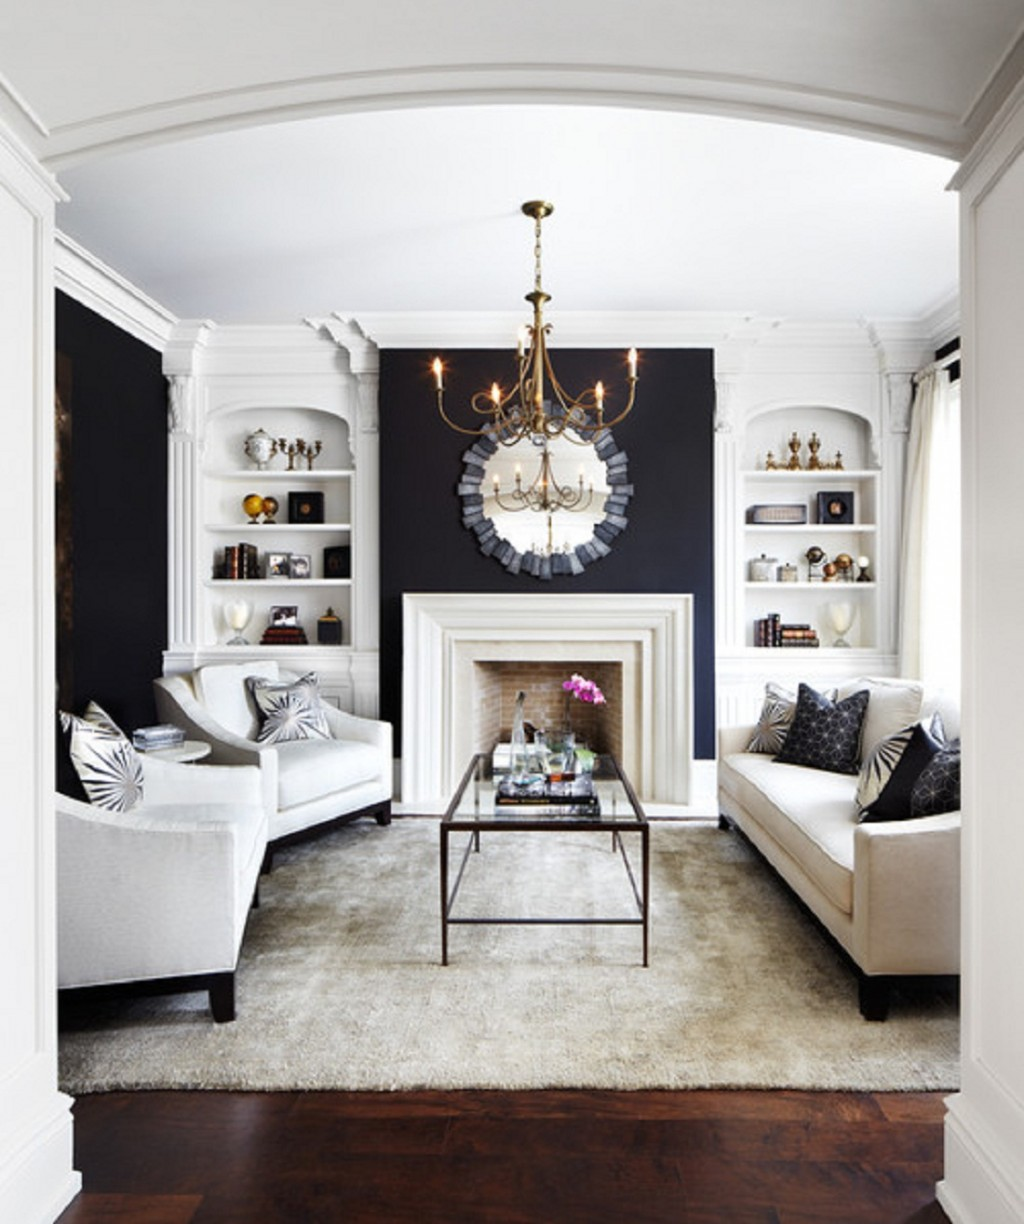 Living Room With Bold Hues Of Black With Contrasting Shades Of White